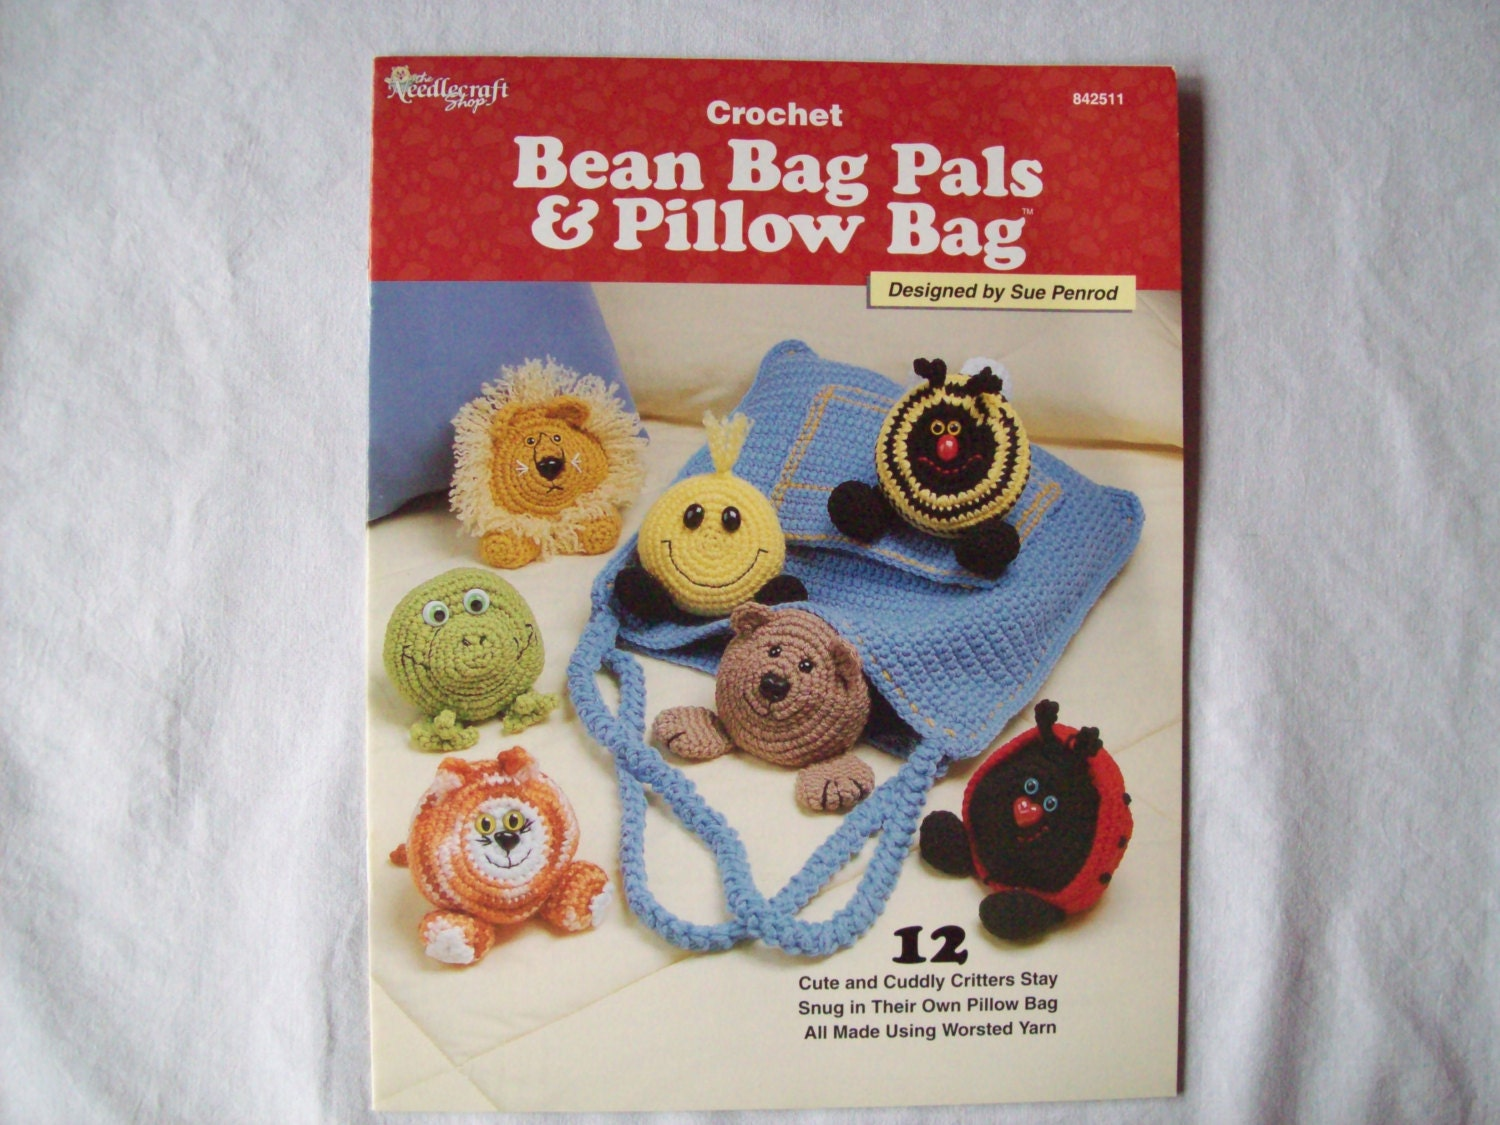 Crochet Beach Bag Pattern : 12 Crochet Pattern Stuffed Animal Toy Bean Bag Pals & Pillow